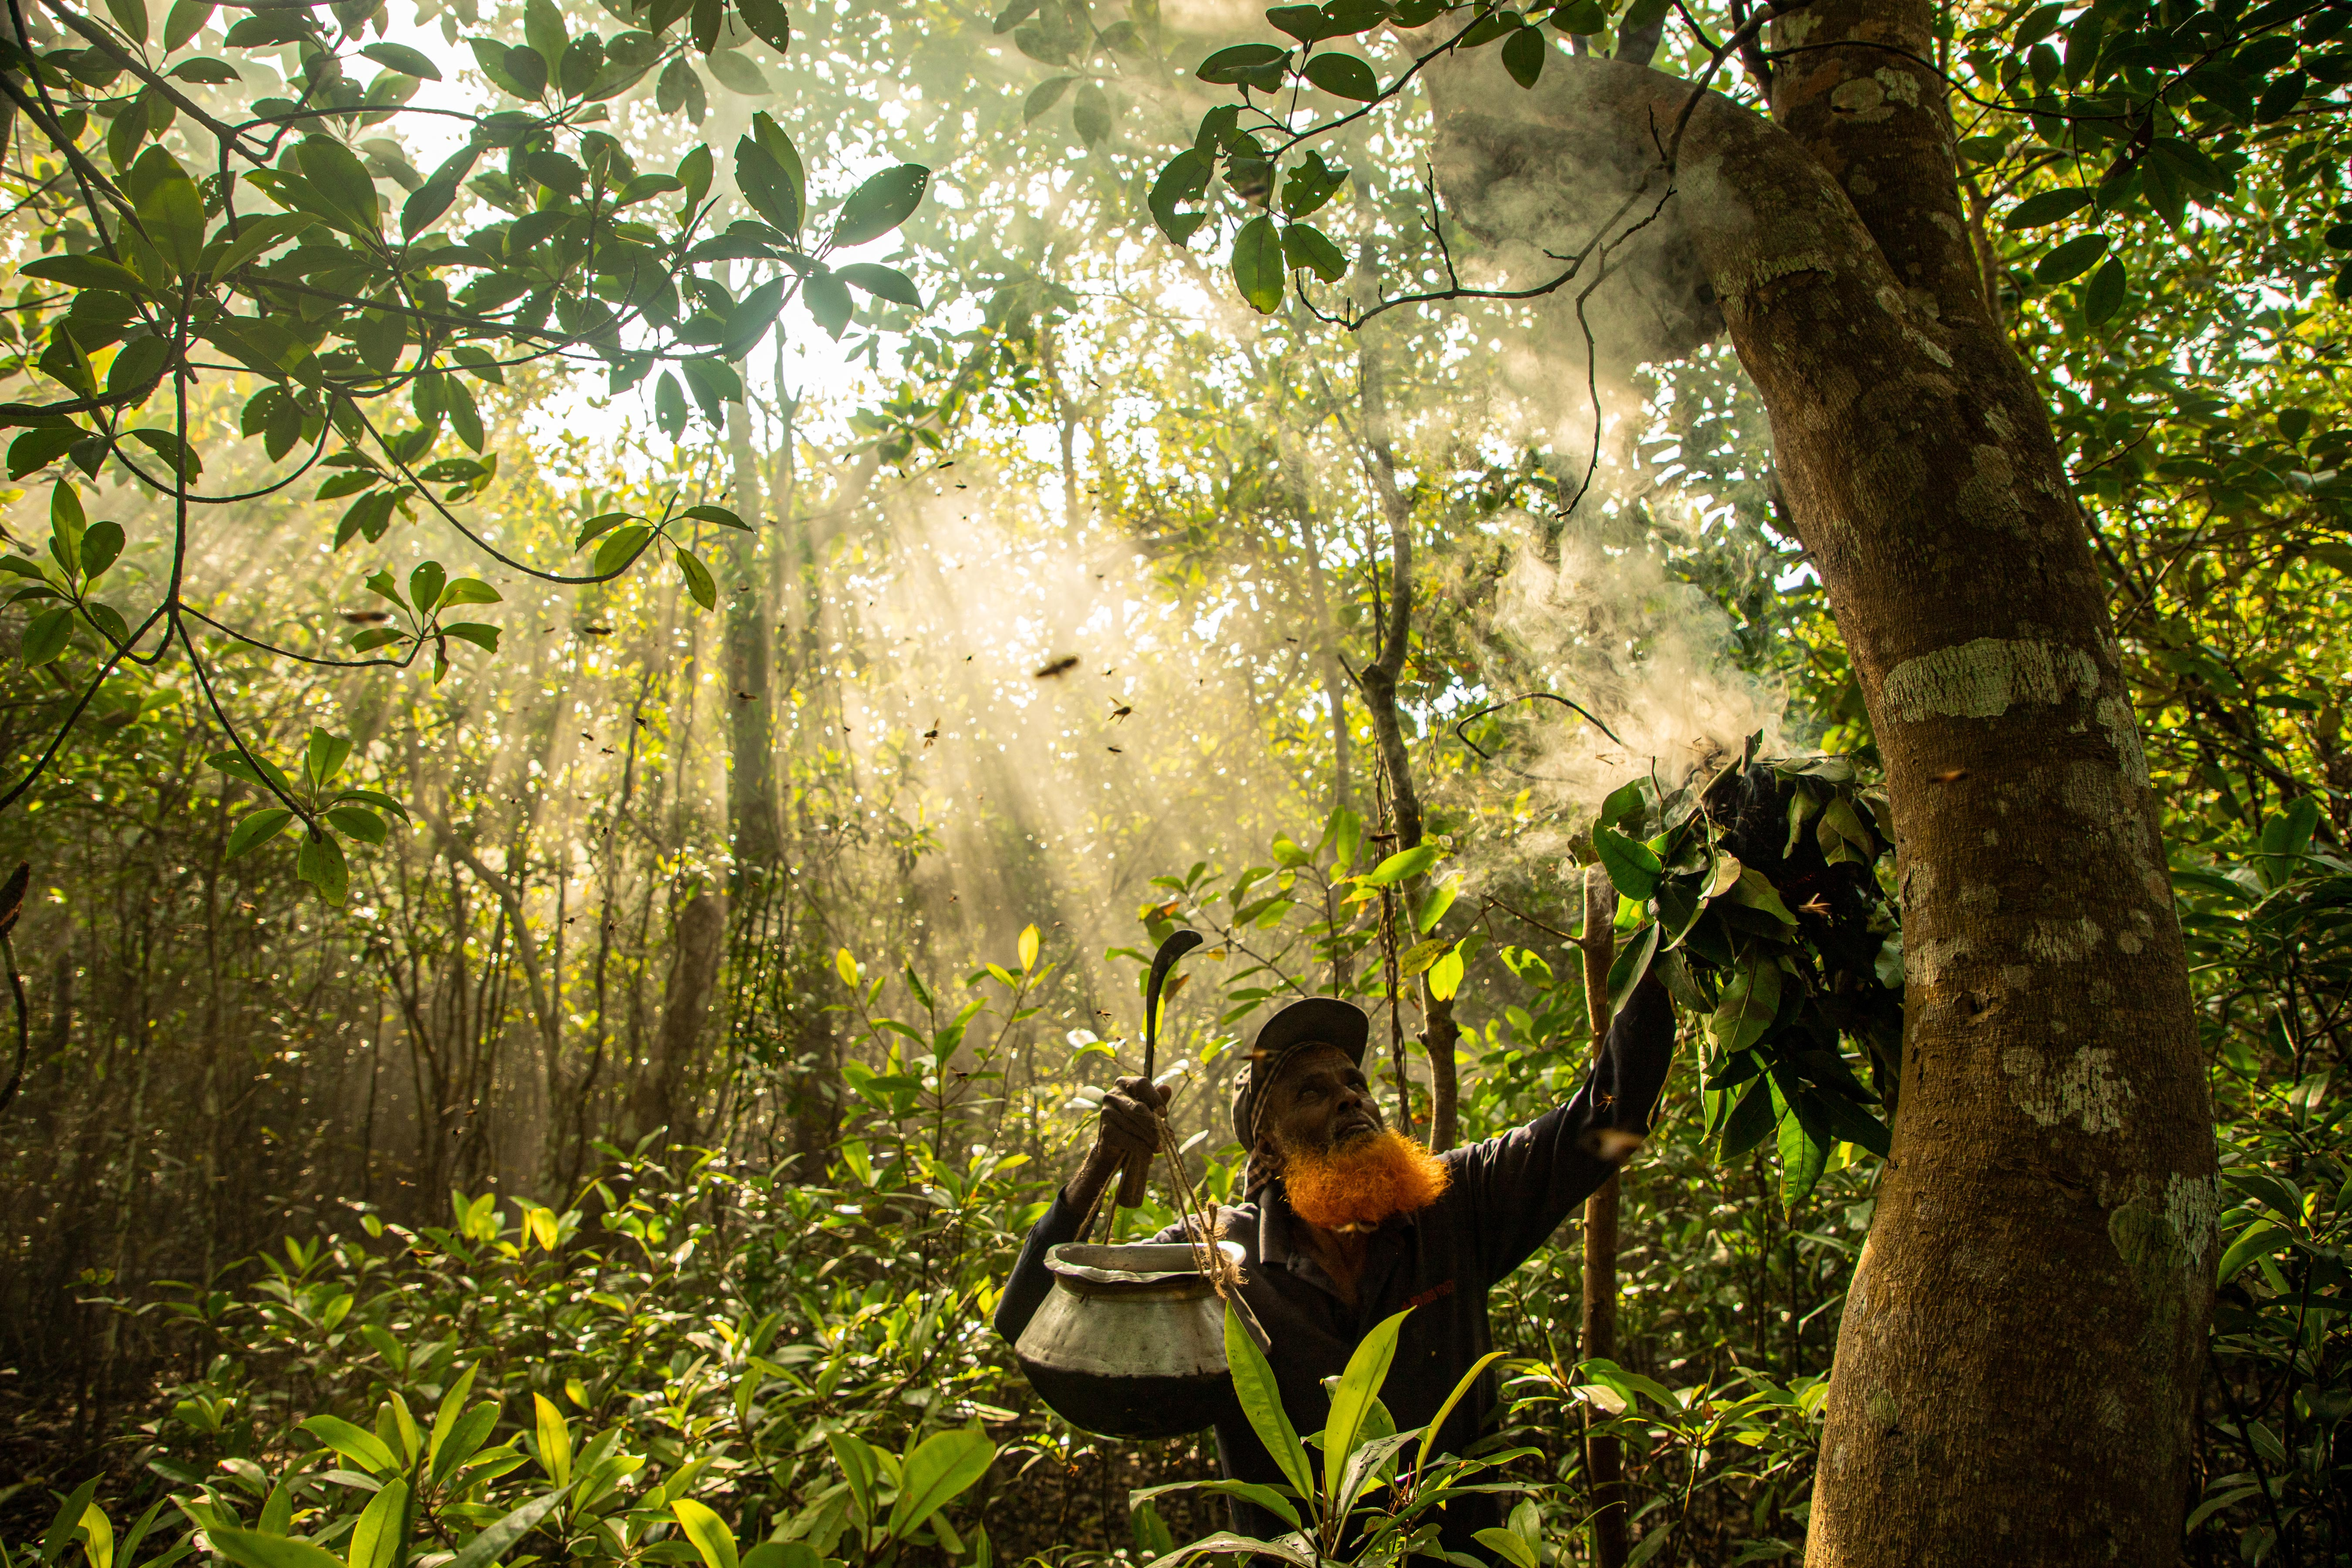 'A Brave Livelihood' shows a precious moment a wild honey gatherer subdues giant honeybees by smoke, deep in the mangrove forest.